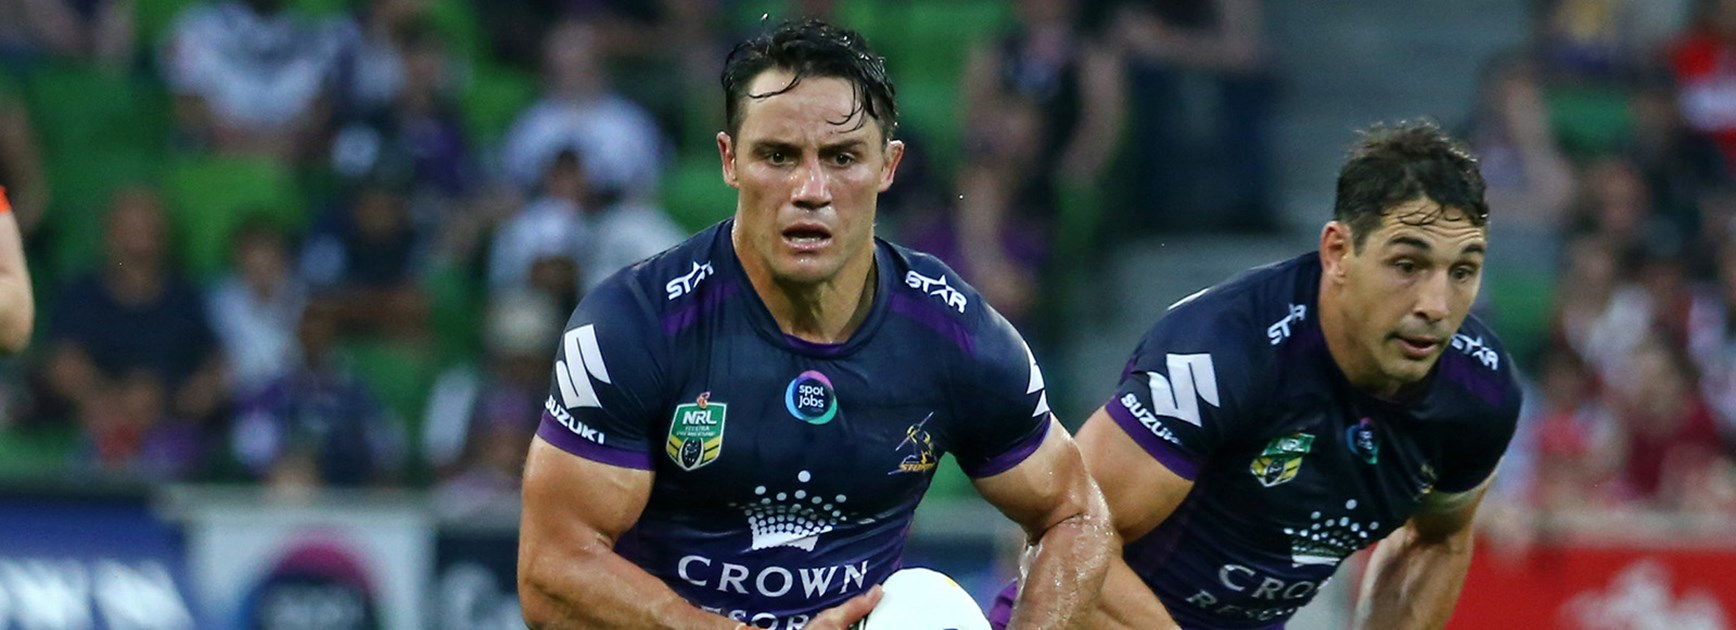 The Titans will be on high alert when Cooper Cronk has the ball in his hands.